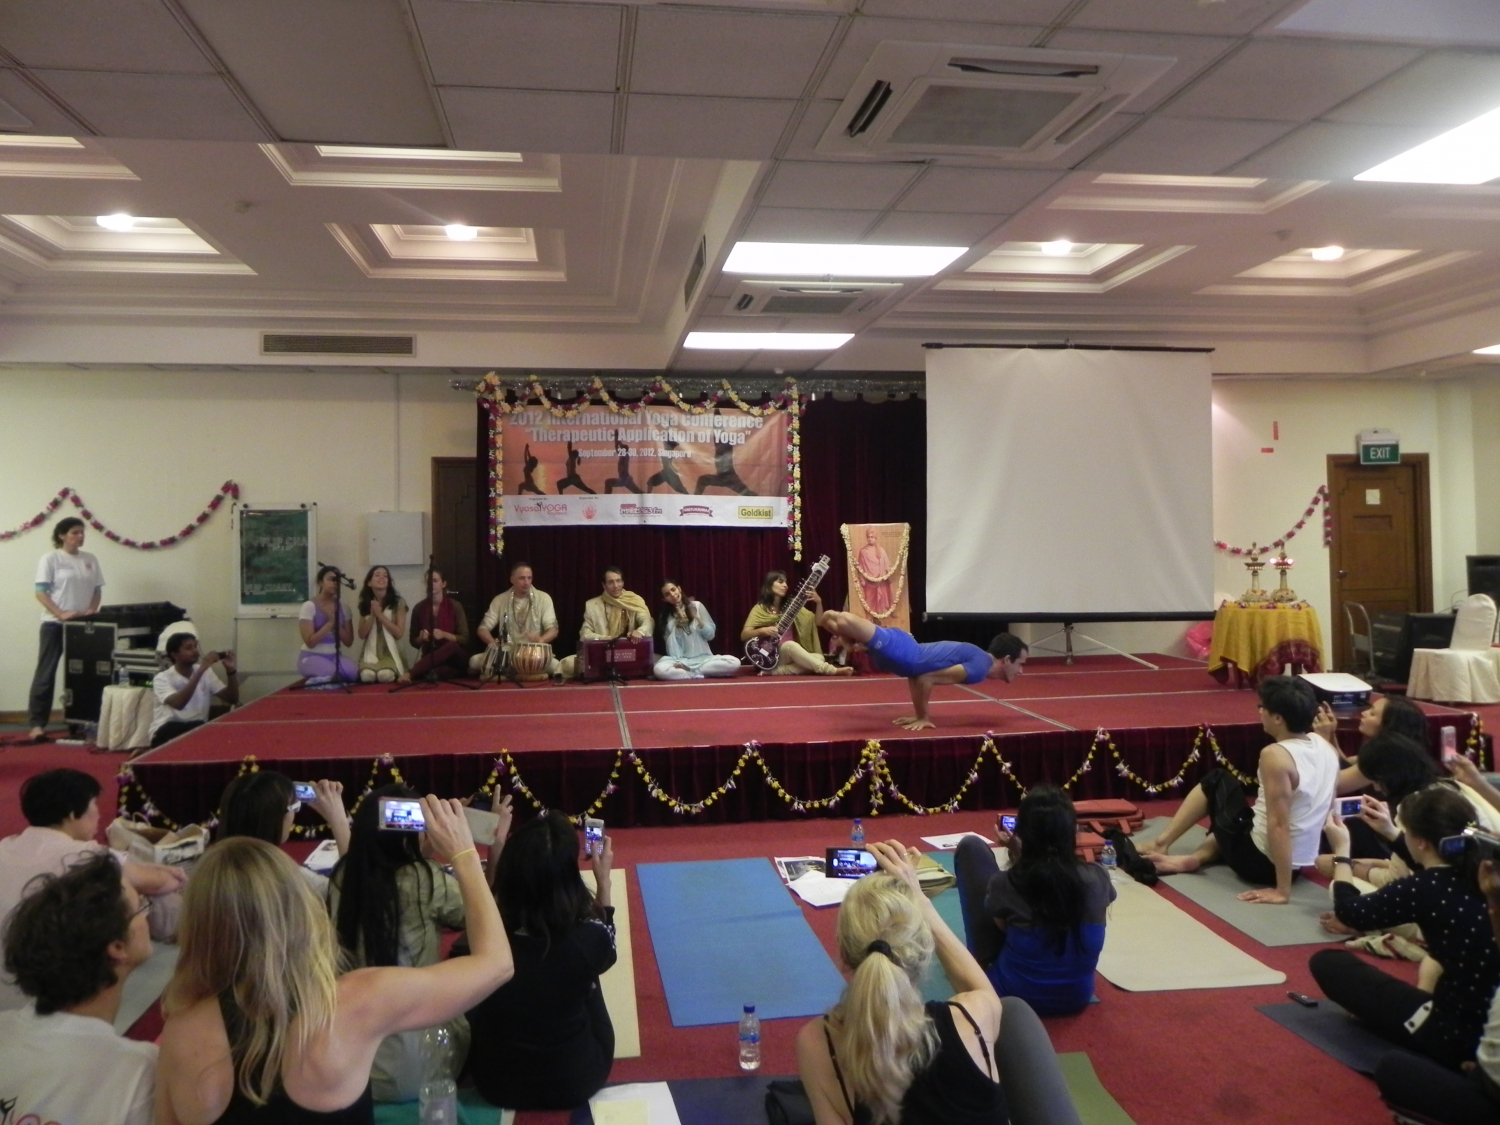 2012 International Yoga Conference, Therapeutic Application of Yoga